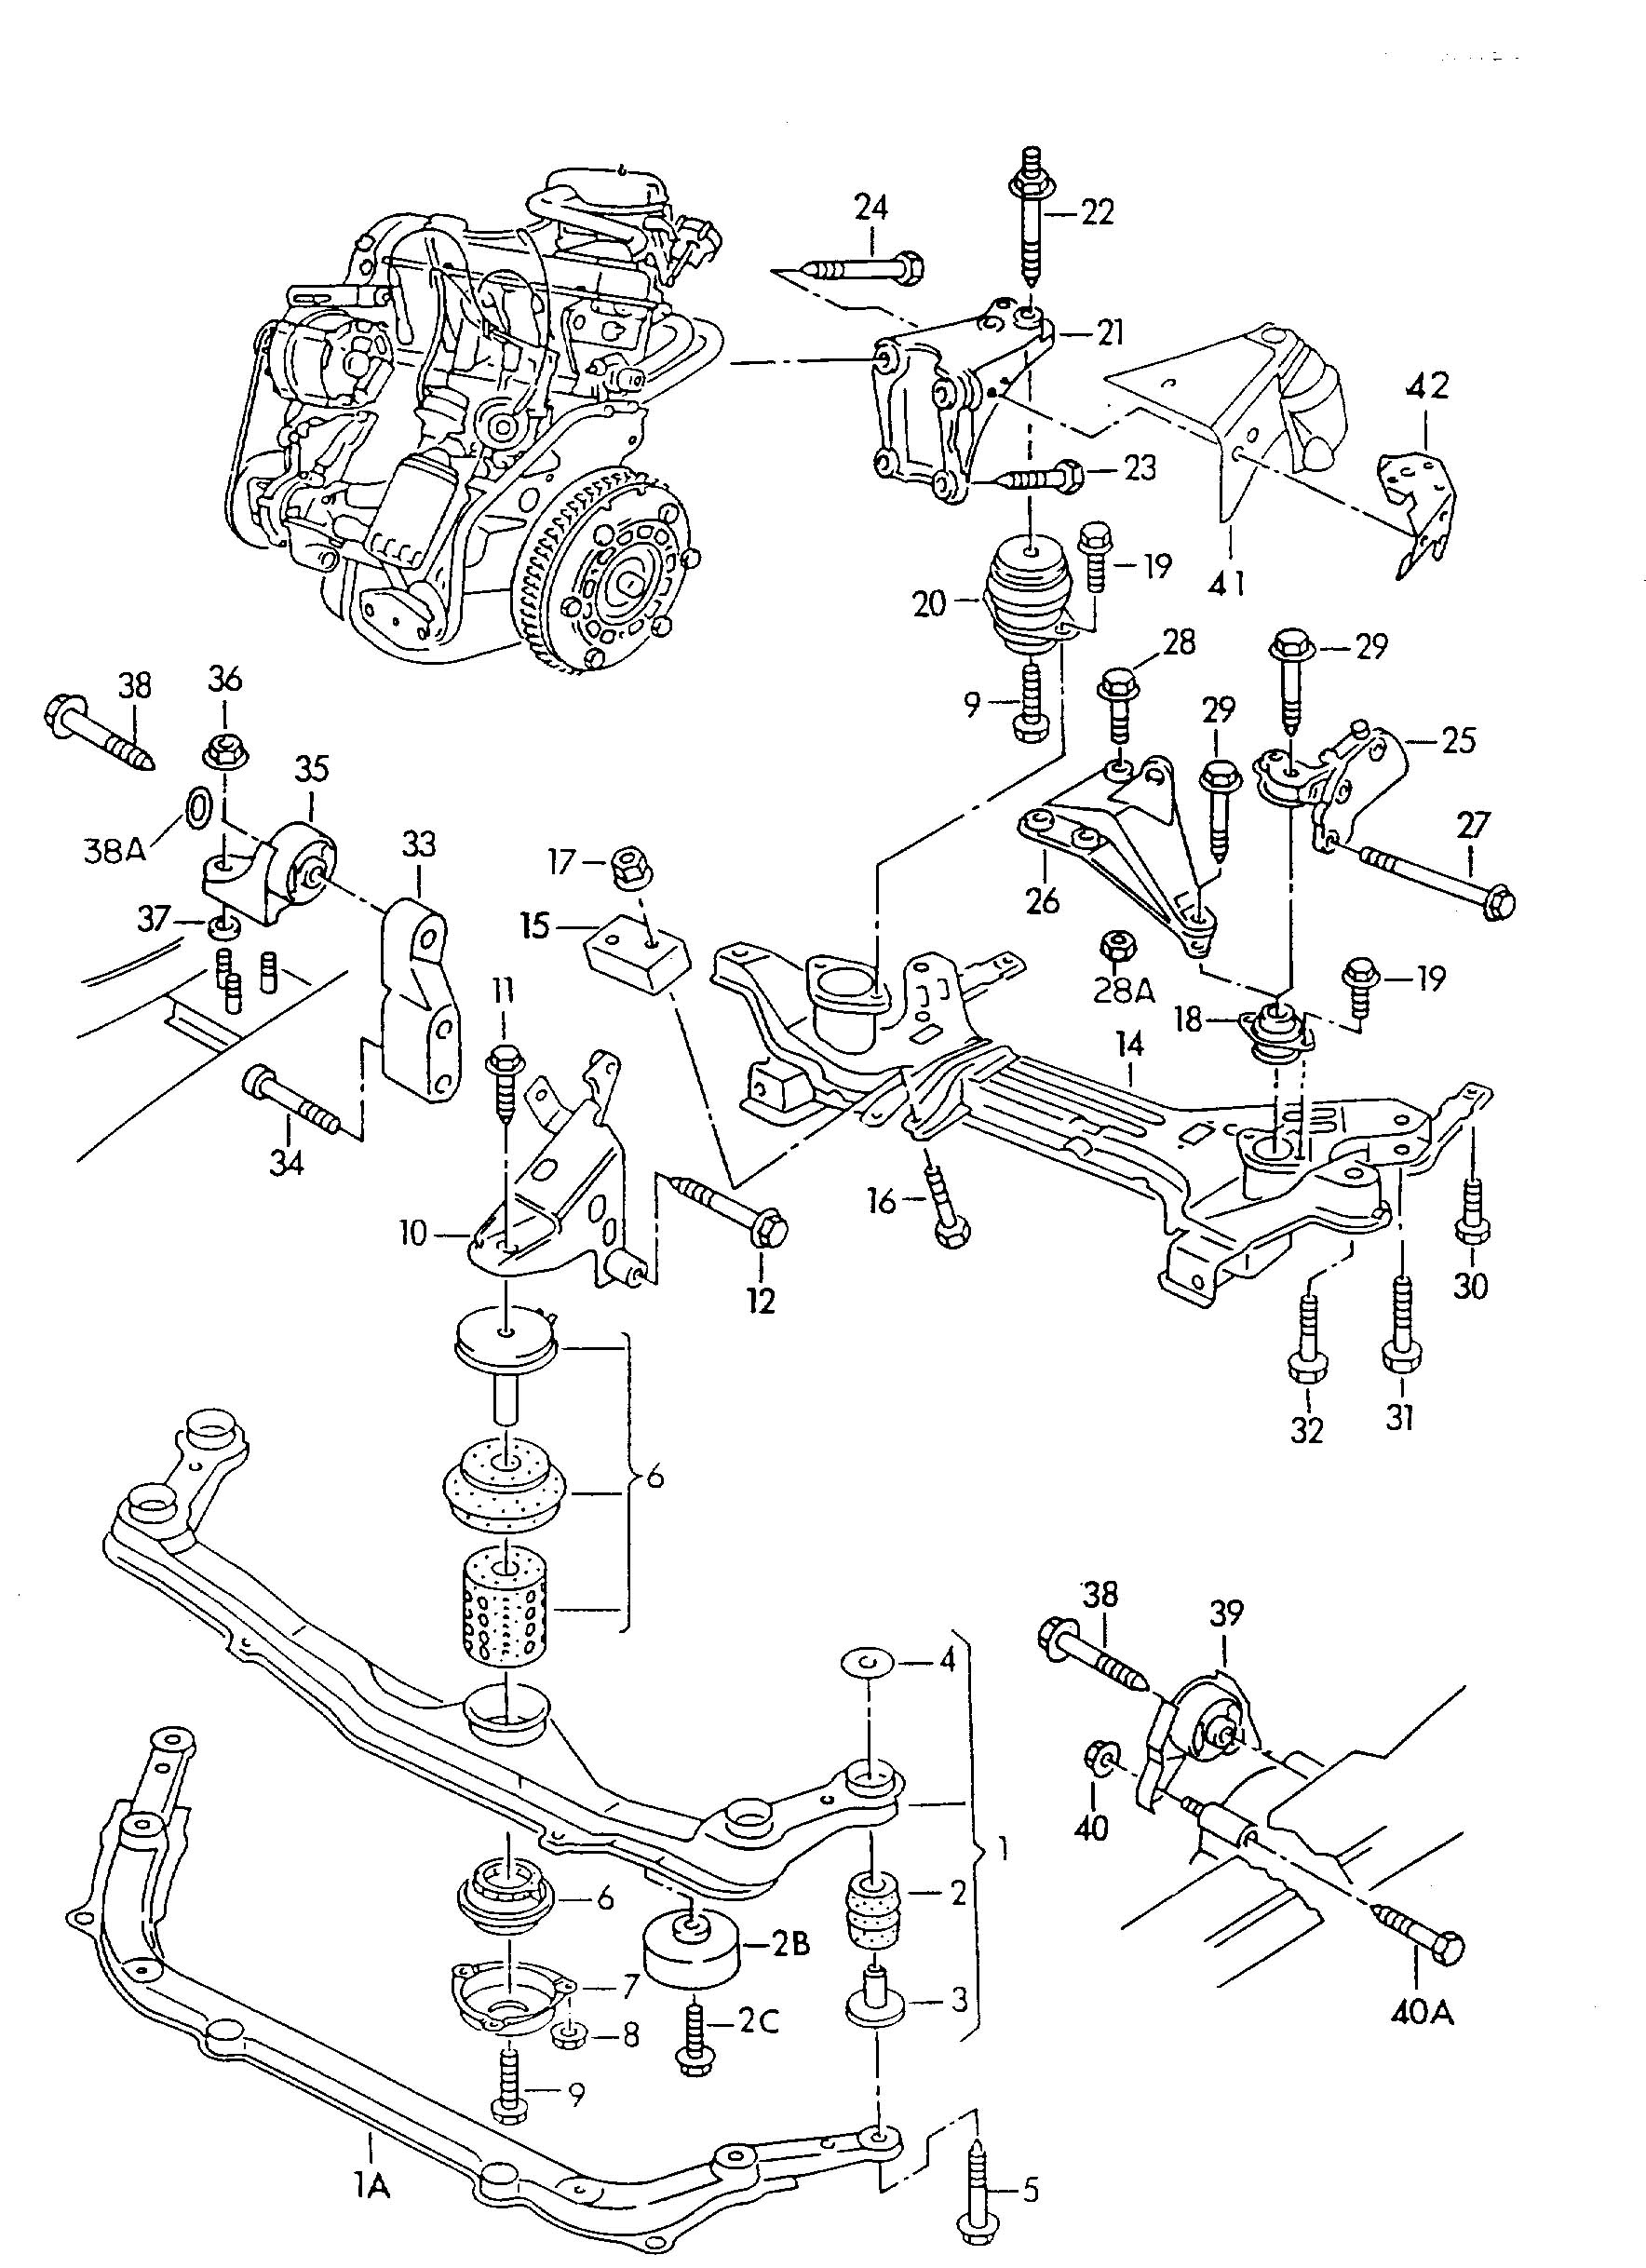 Vw Engine Cover Parts Diagram 2001, Vw, Free Engine Image